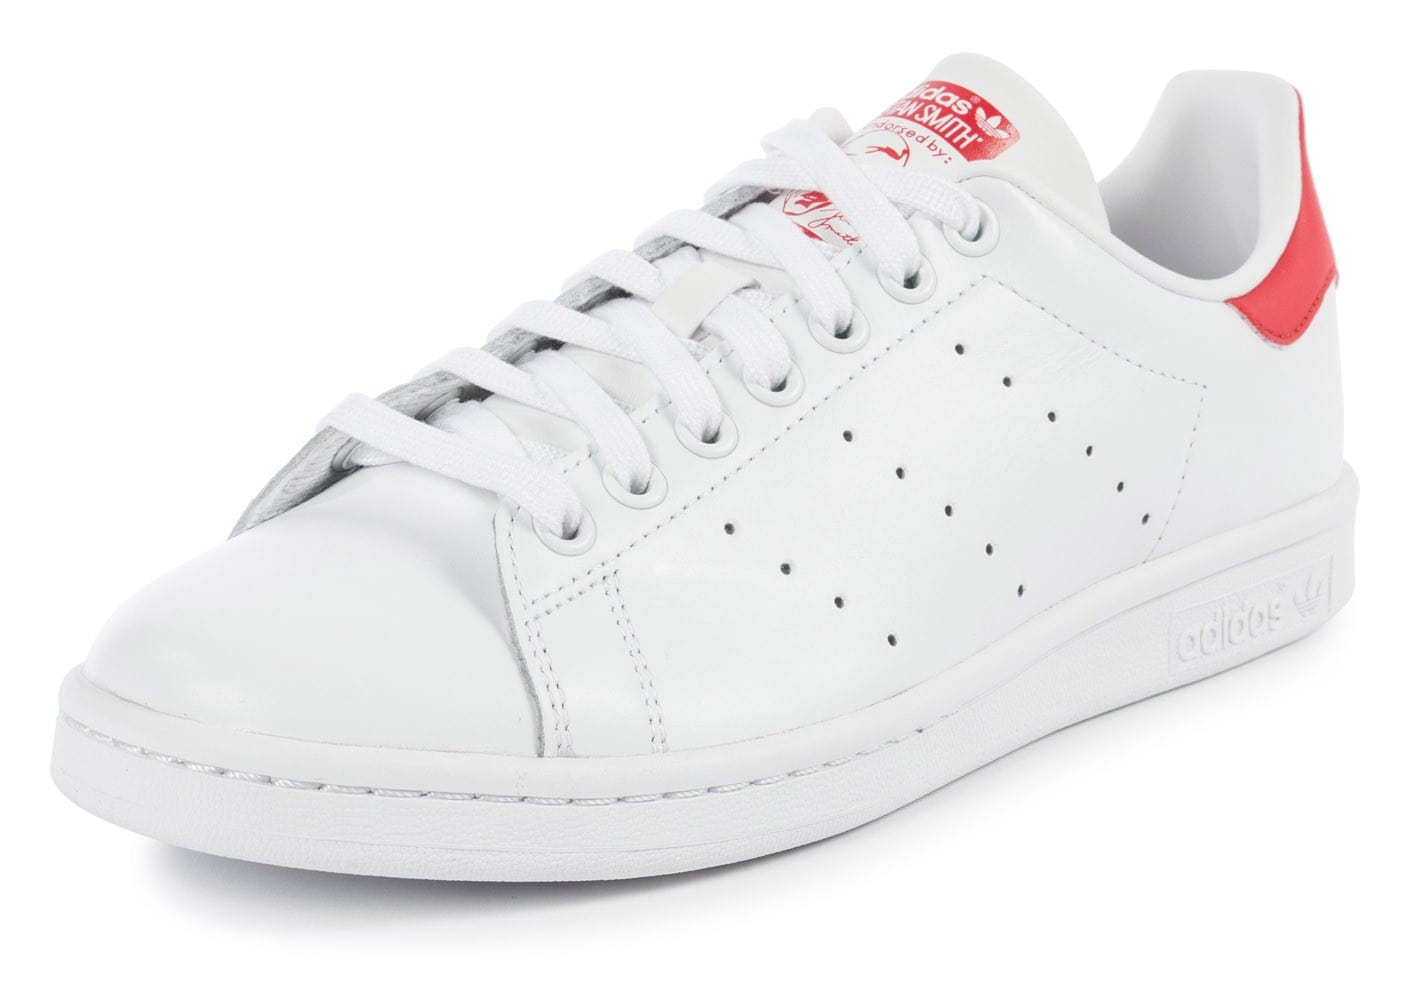 stan smith rouge et blanche